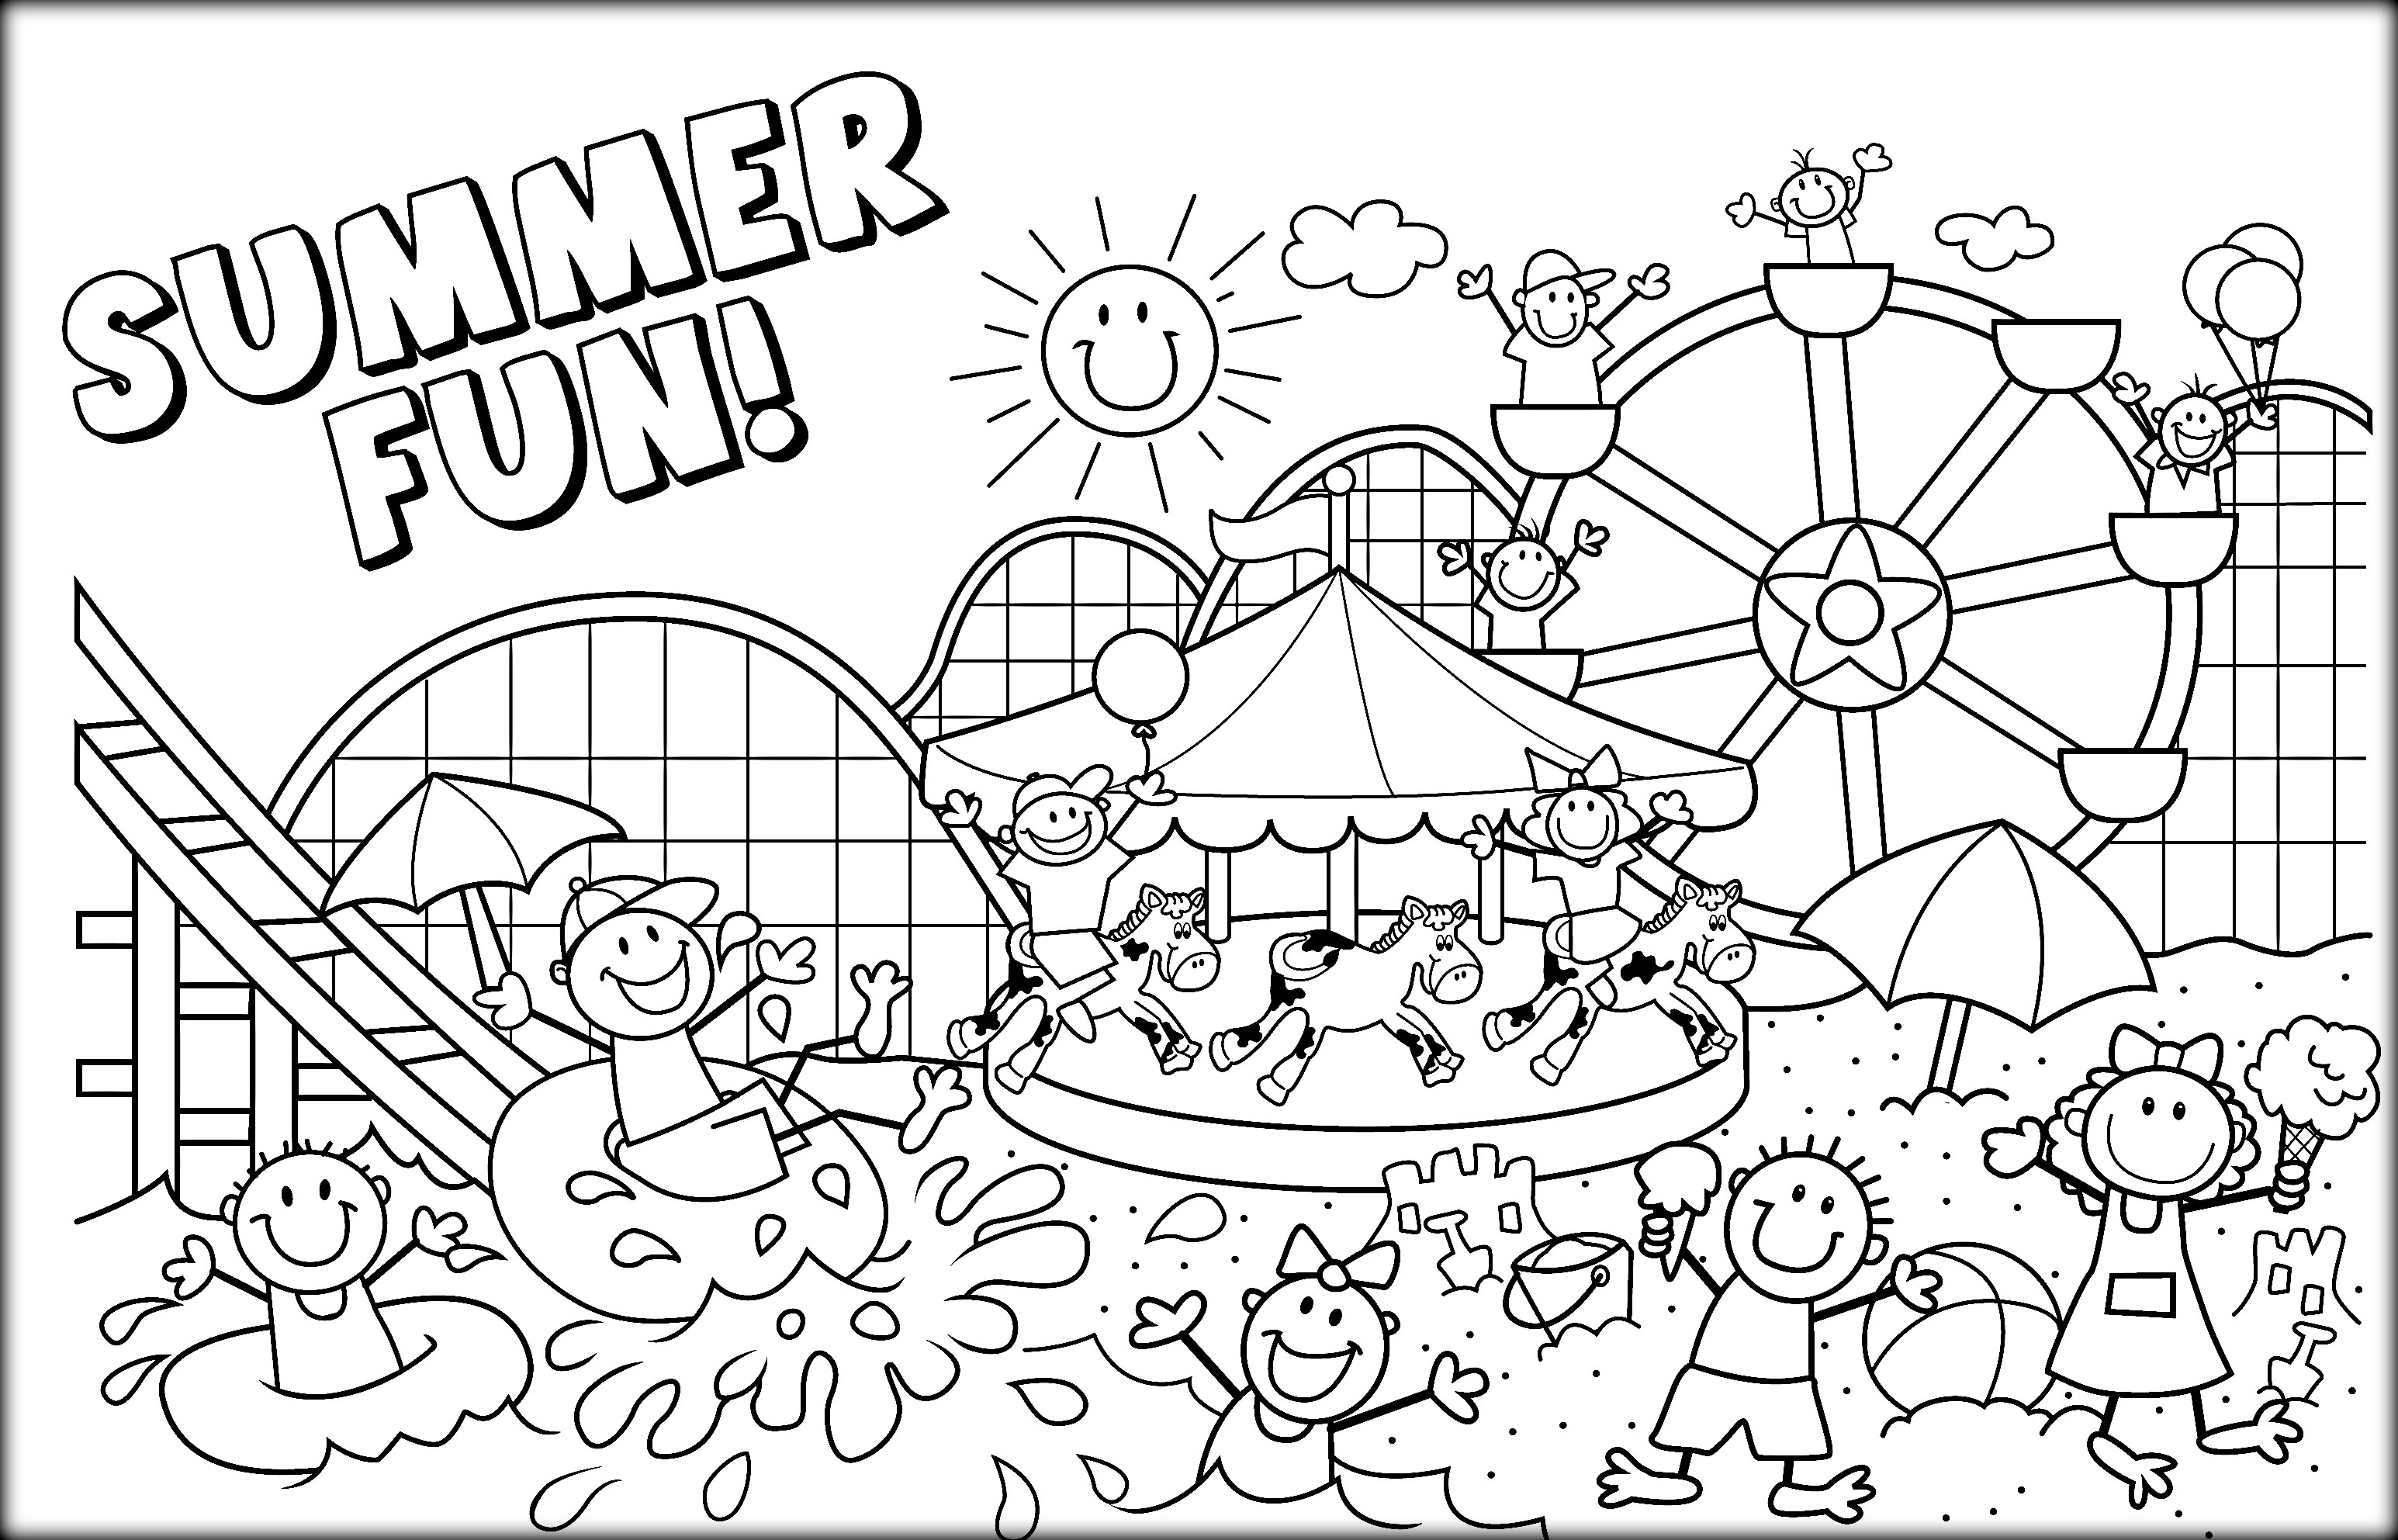 Coloring Pages : Proven Free Printable Summer Coloring Pages Ti - Free Printable Summer Coloring Pages For Adults